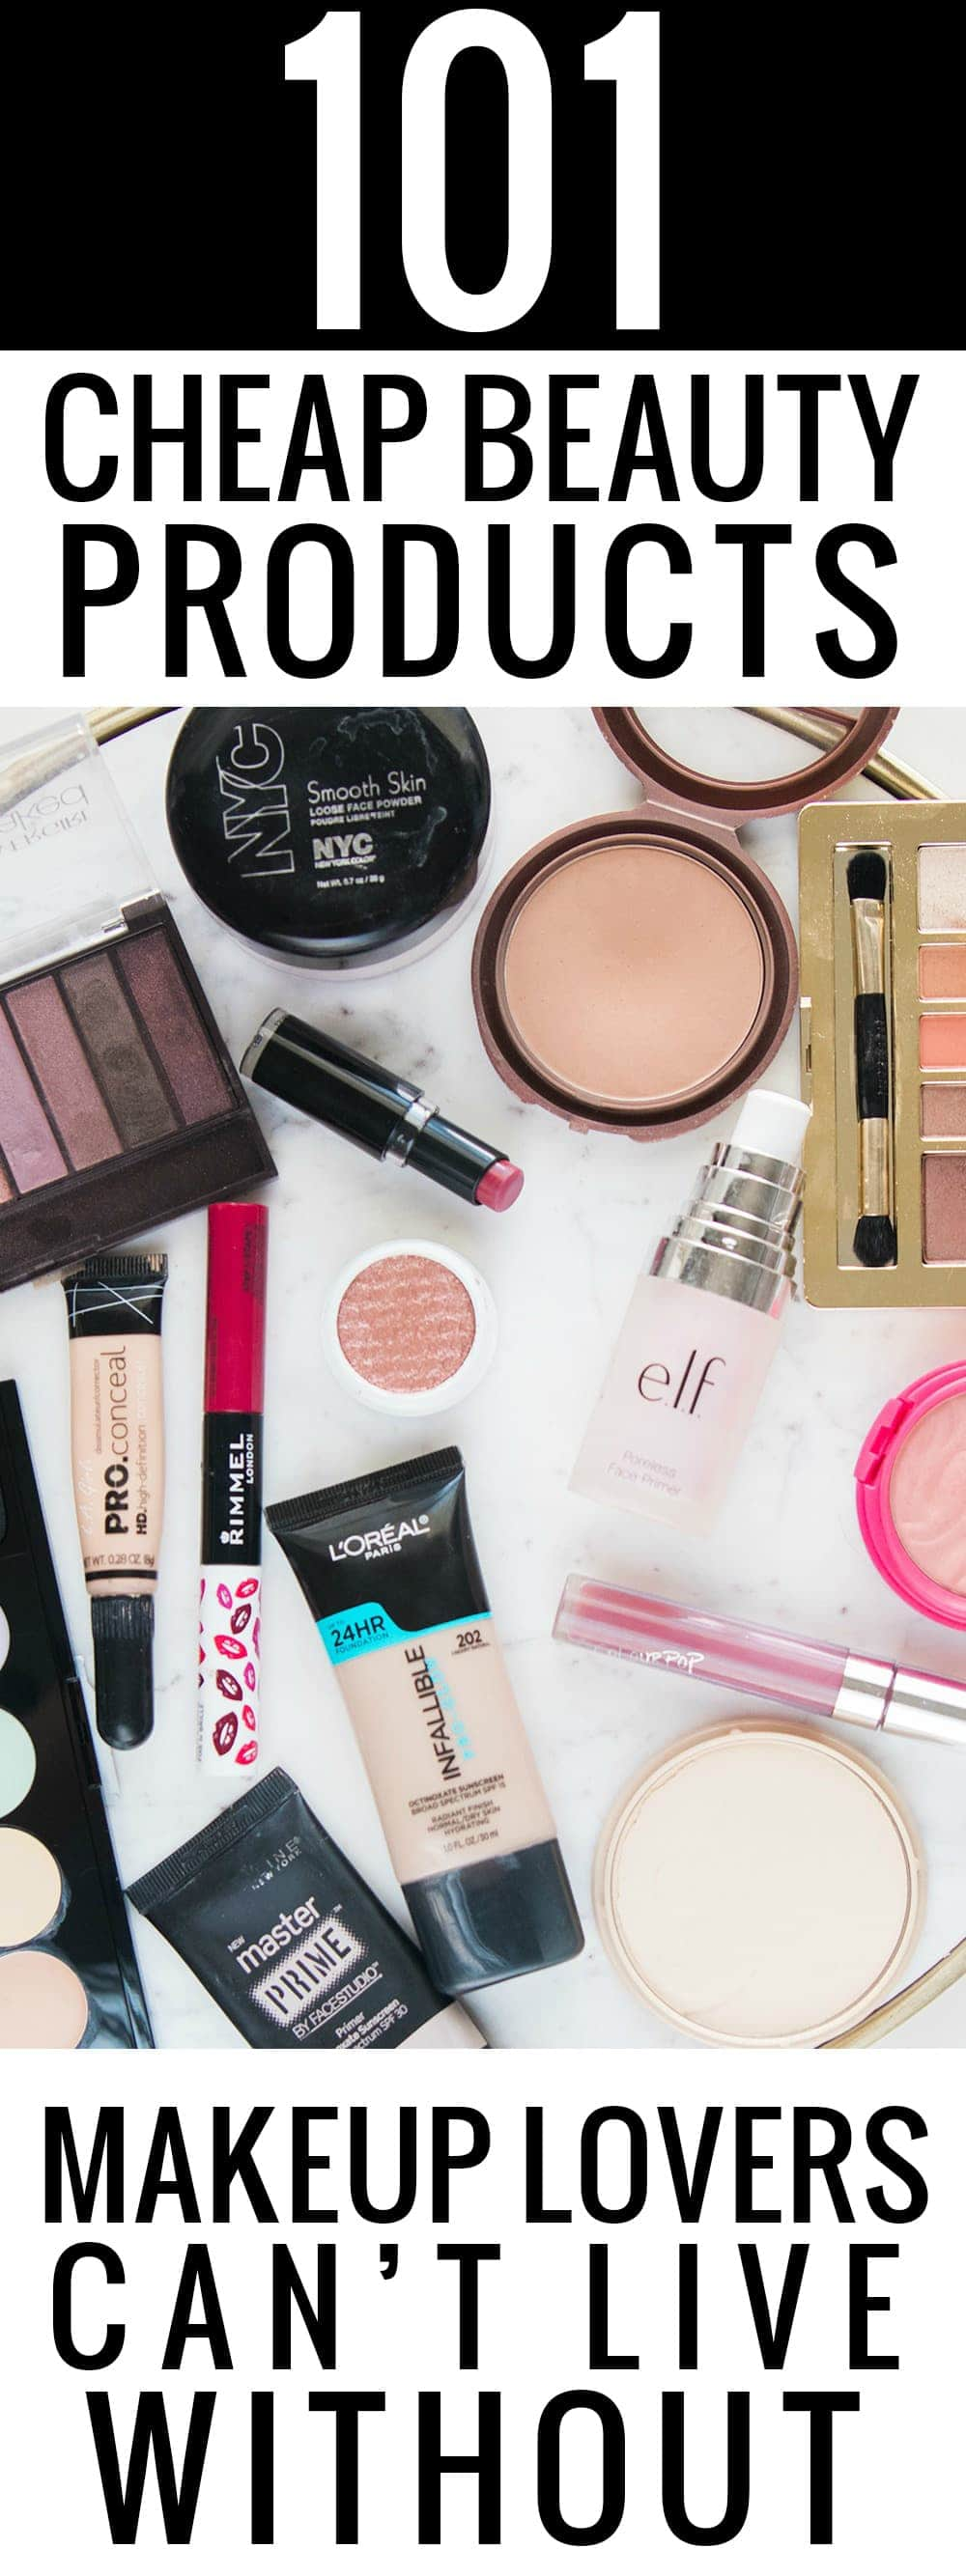 101 Cheap Beauty Products Makeup Lovers Can't Live Without by Houston beauty blogger Meg O. on the Go